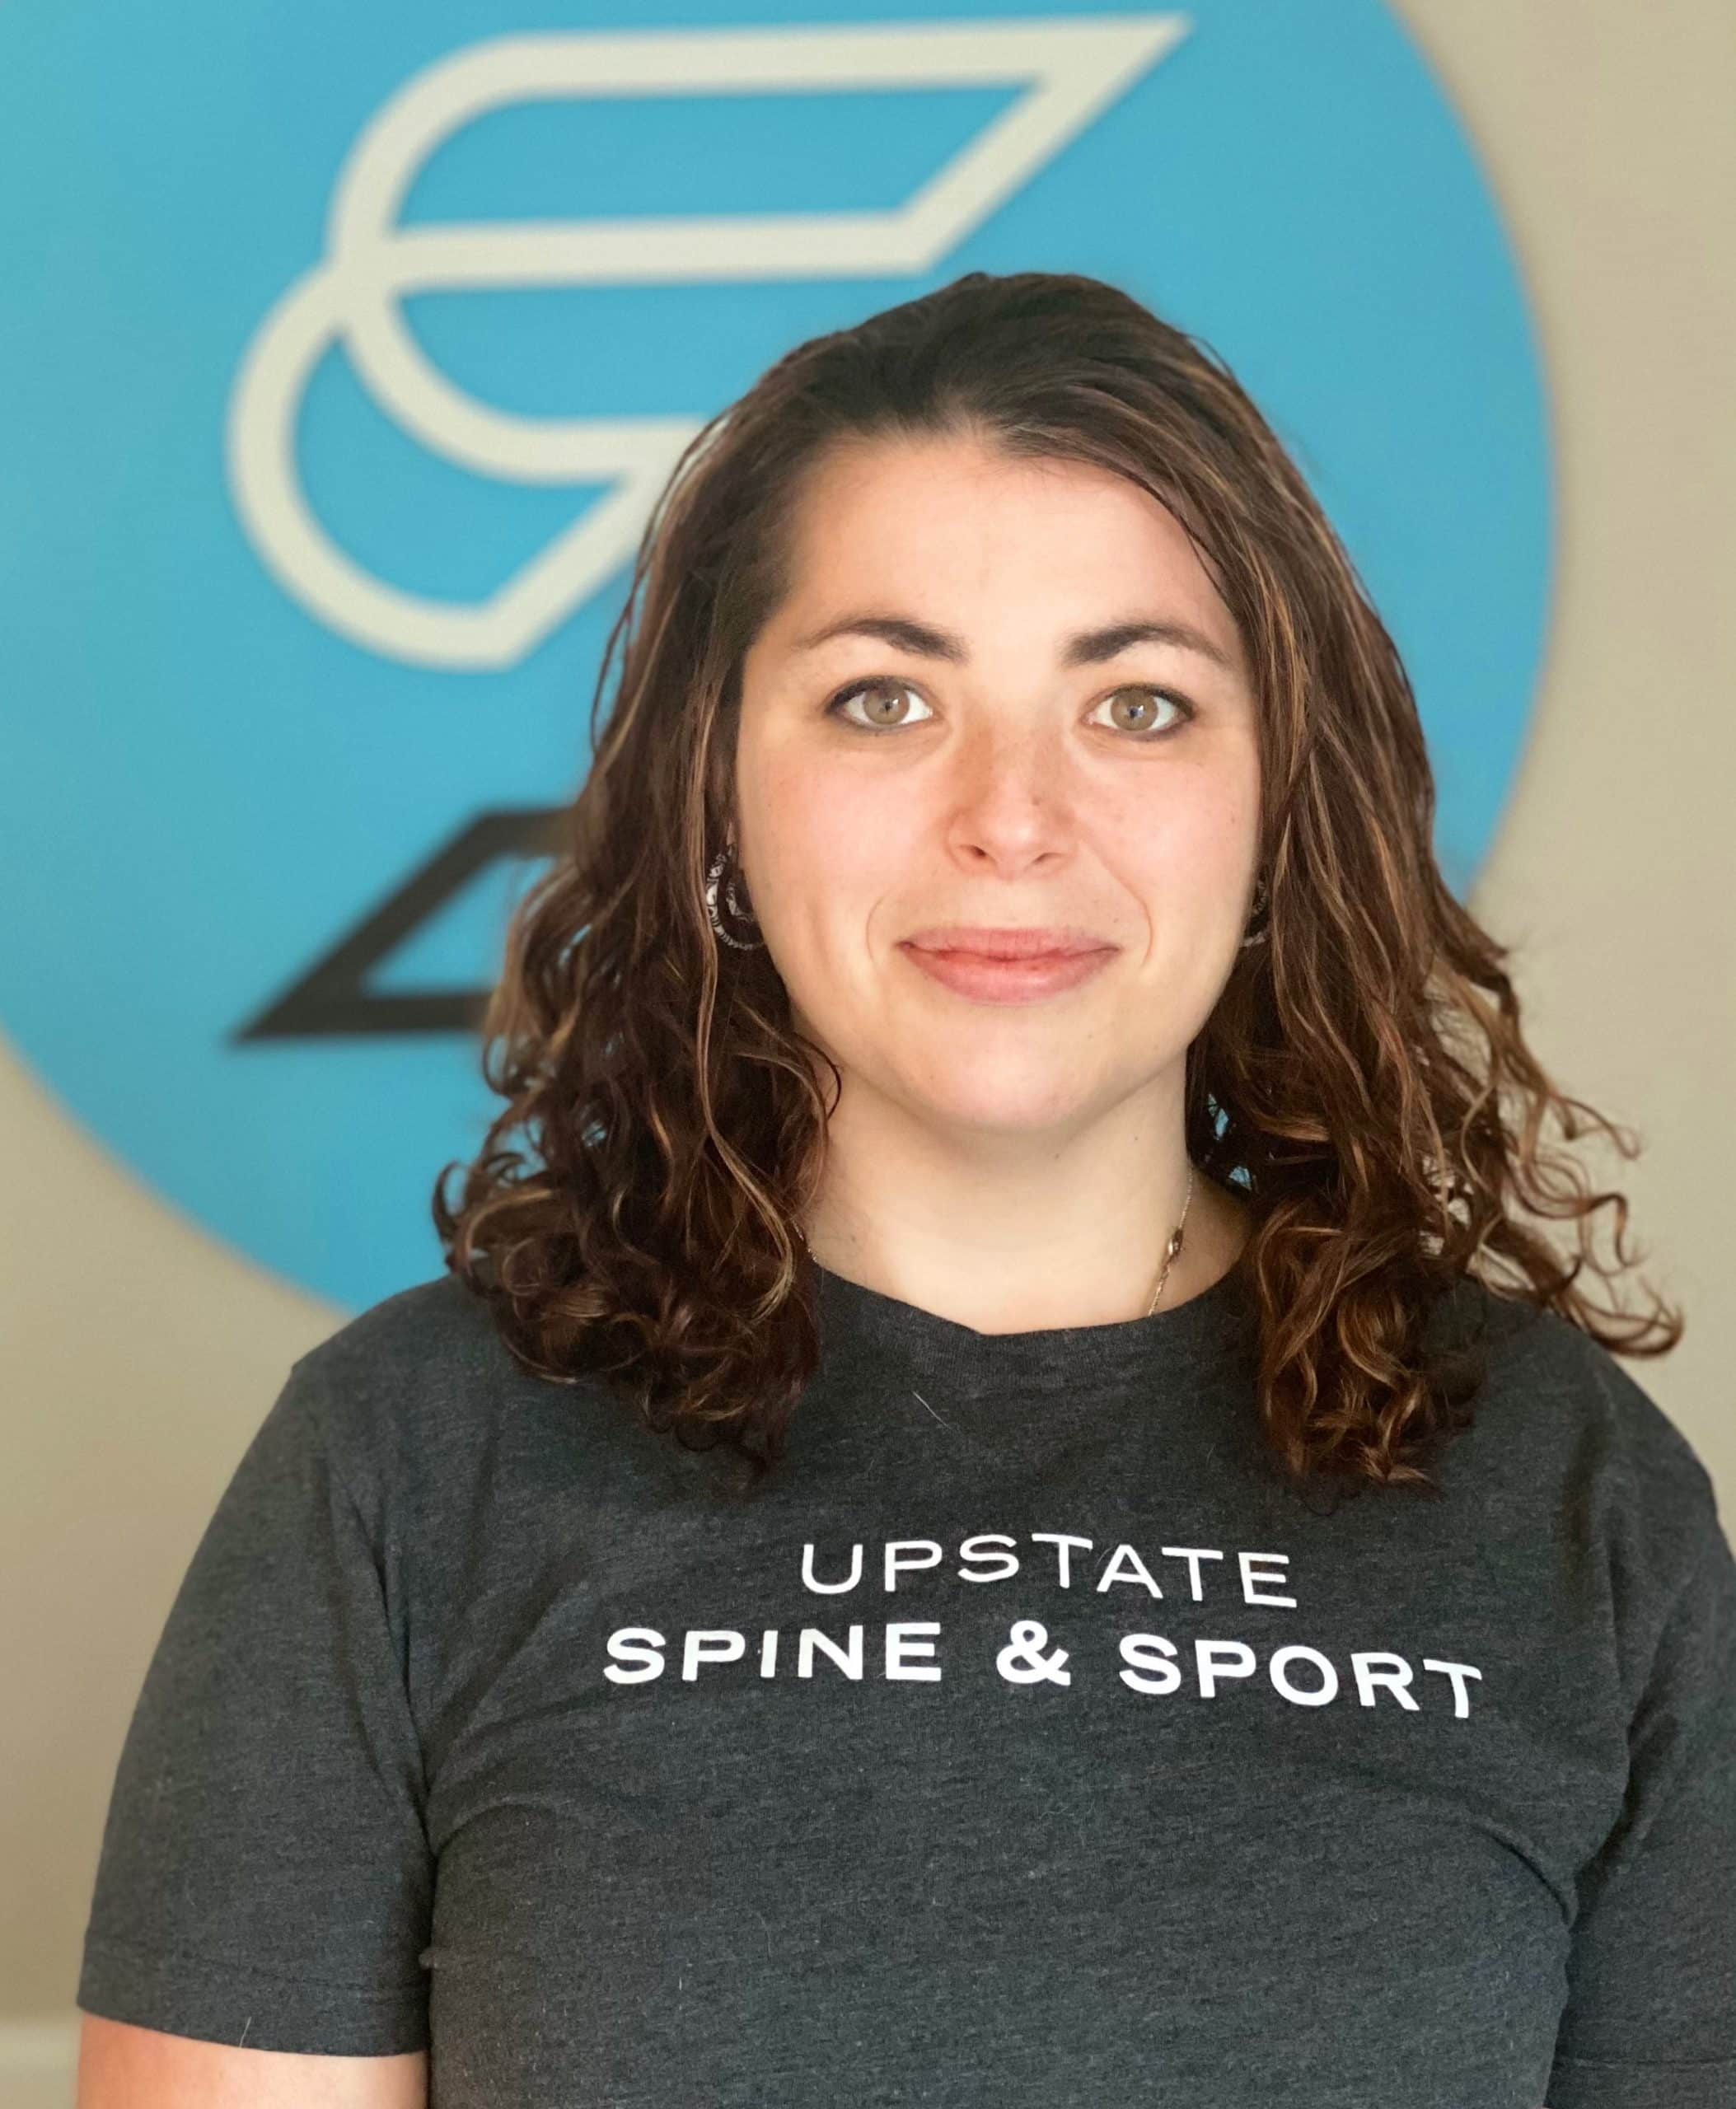 Massage Therapist Greenville SC Shelby Robertson Upstate Spine & Sport 5